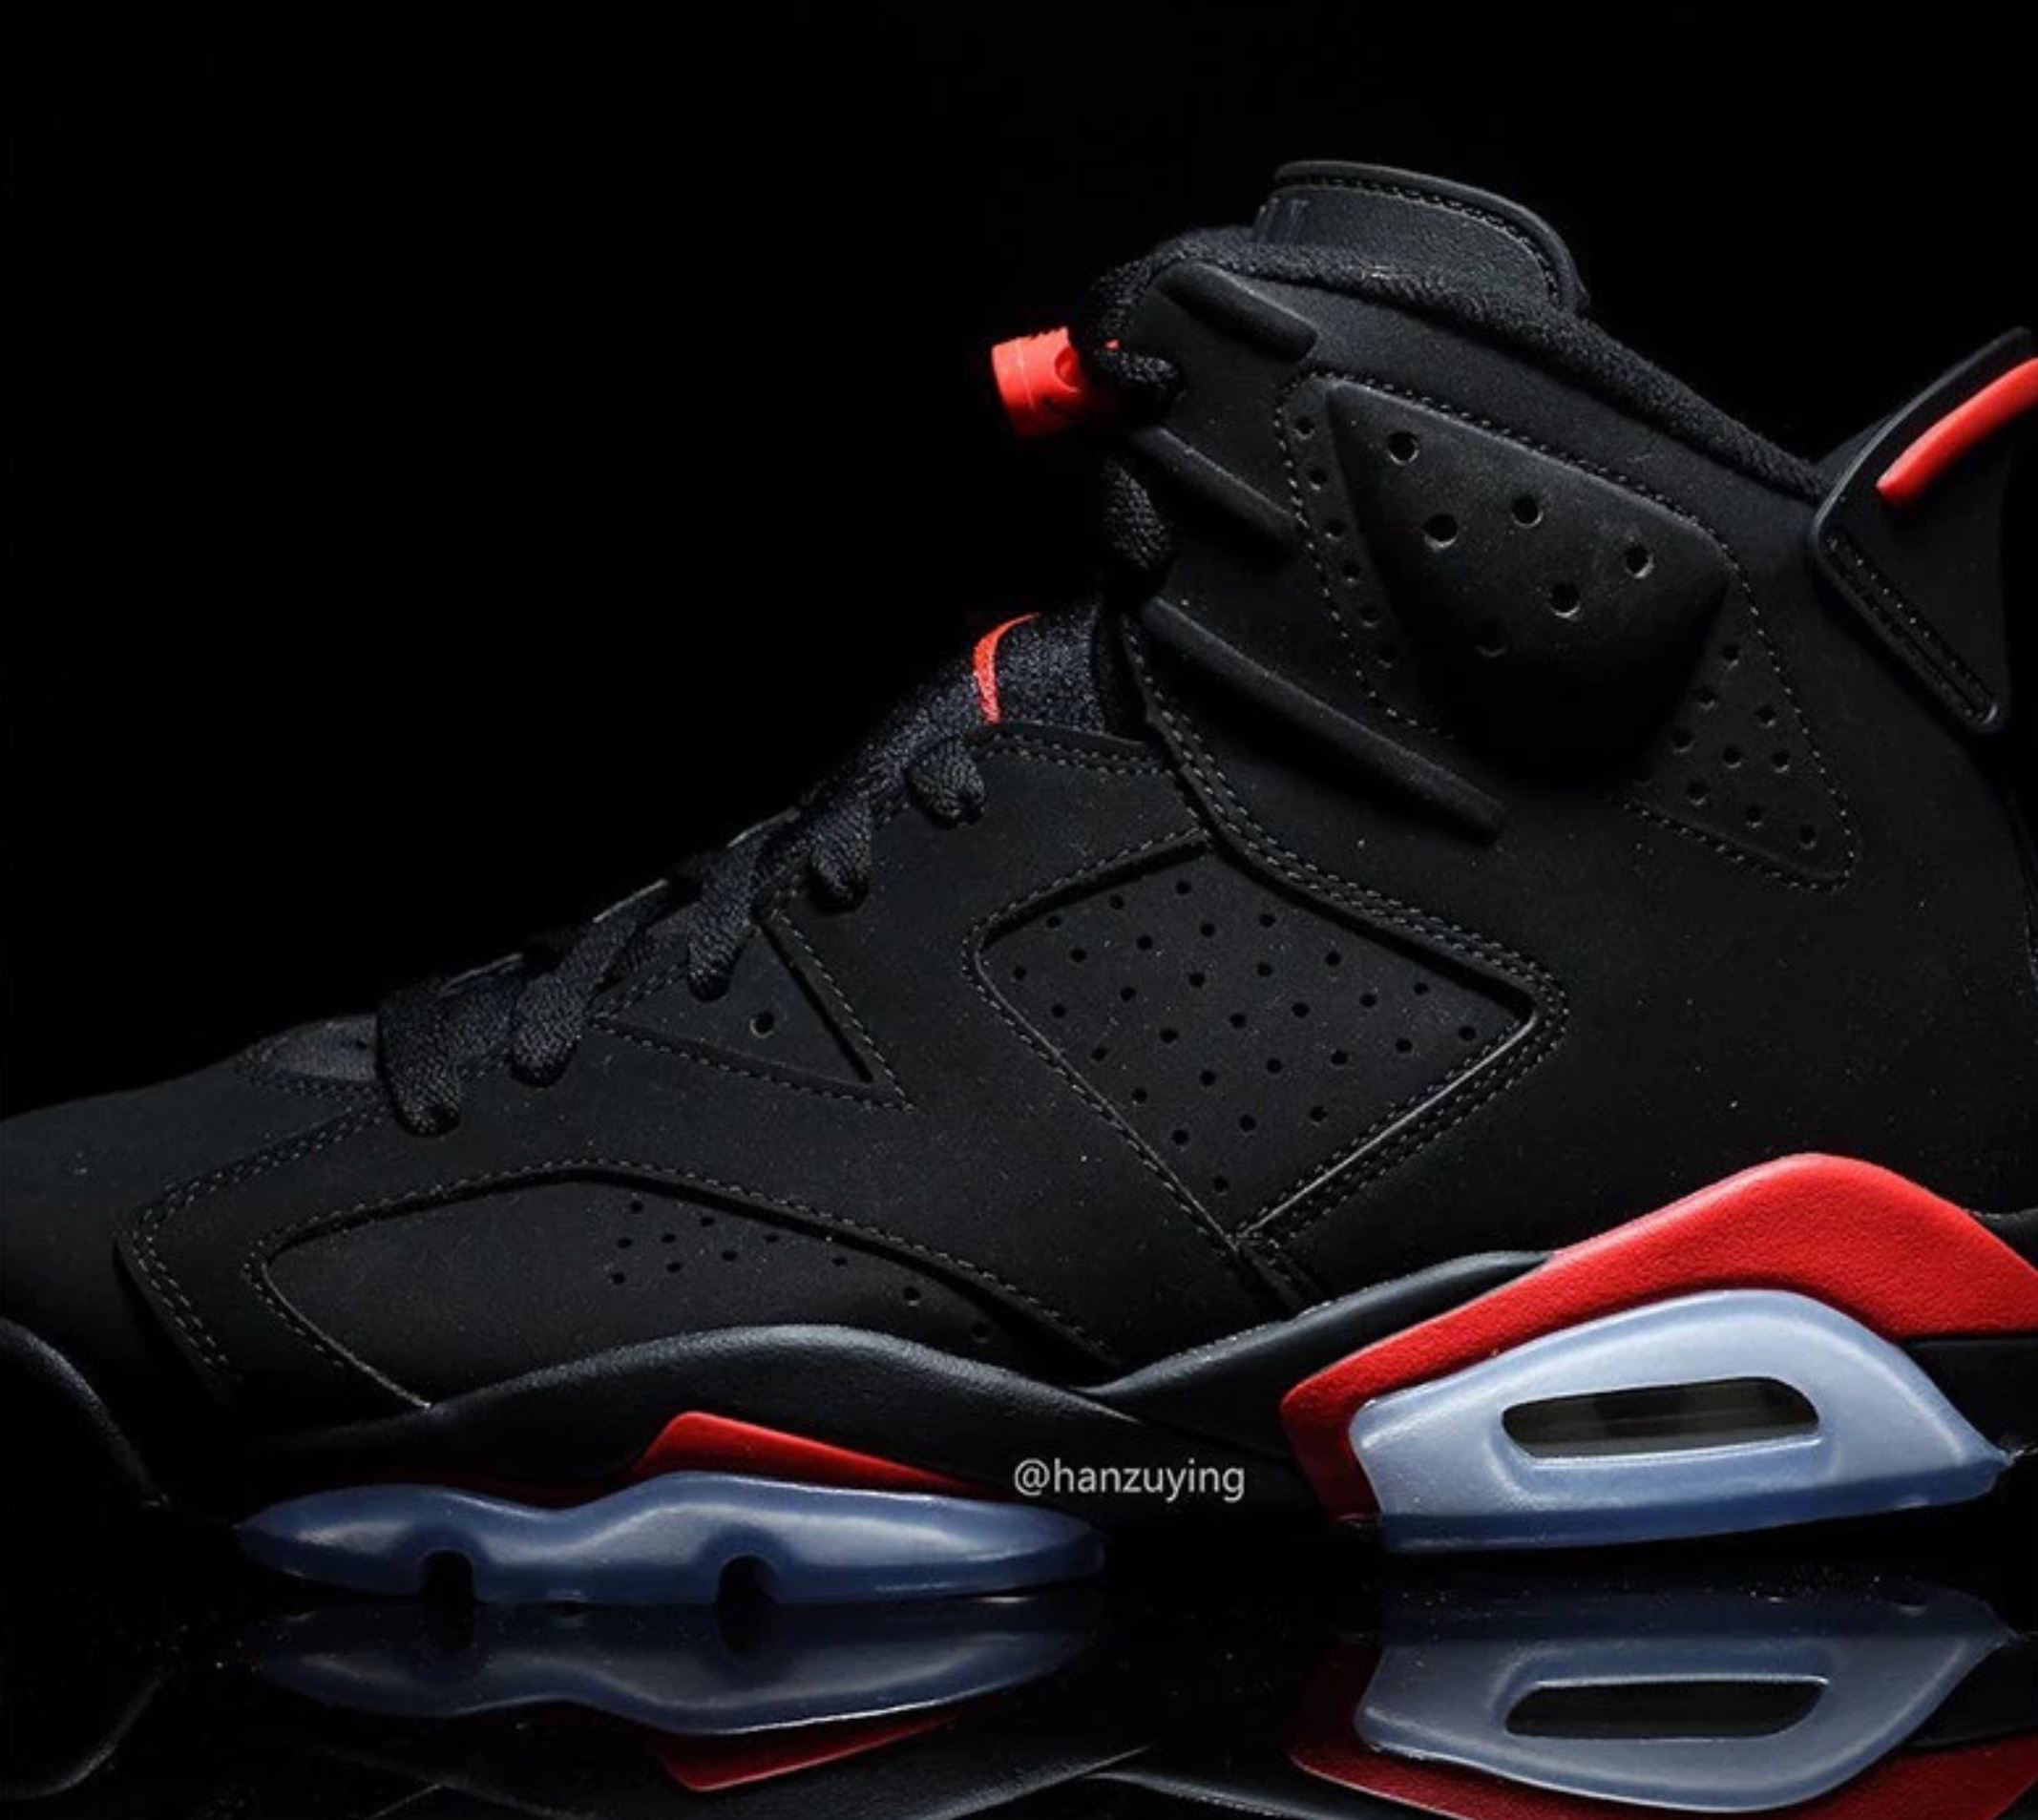 air jordan 6 black infrared release date 2019